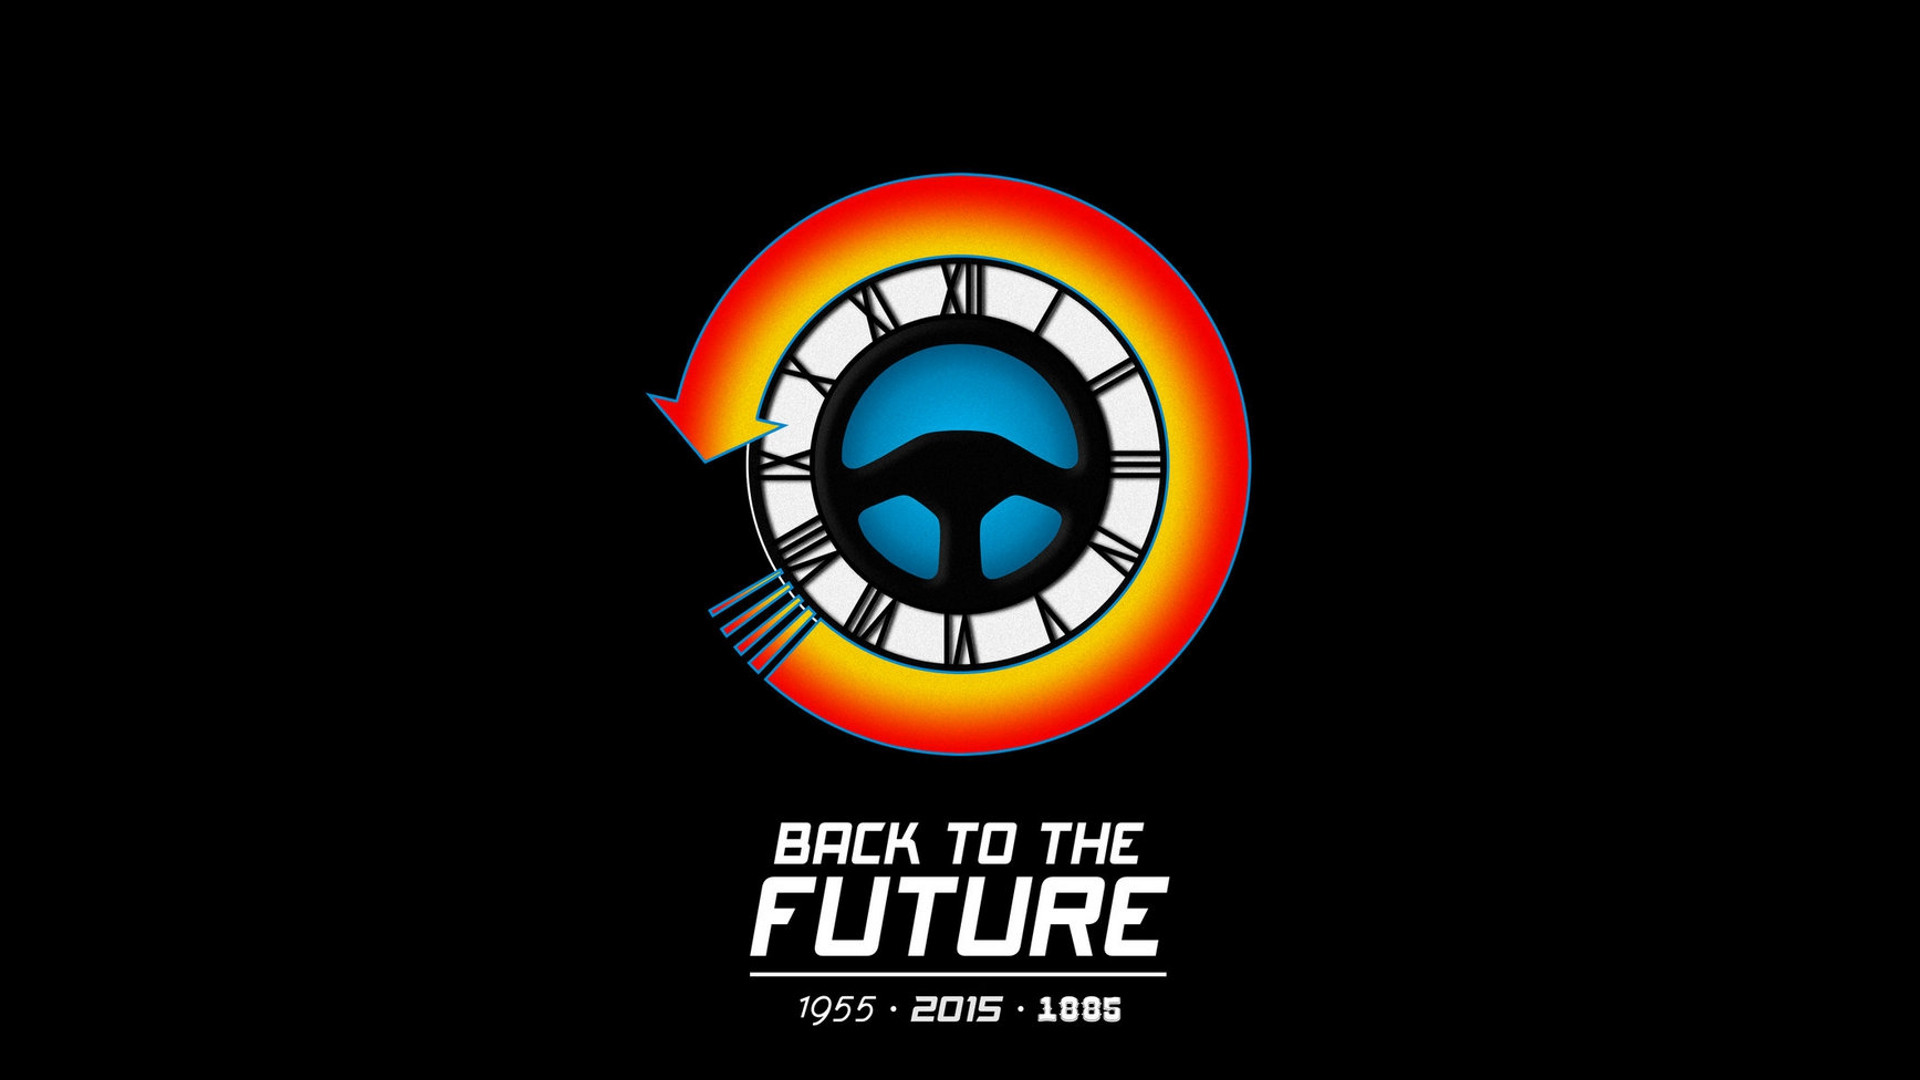 Back to the Future Computer Wallpapers Desktop Backgrounds 1920x1080